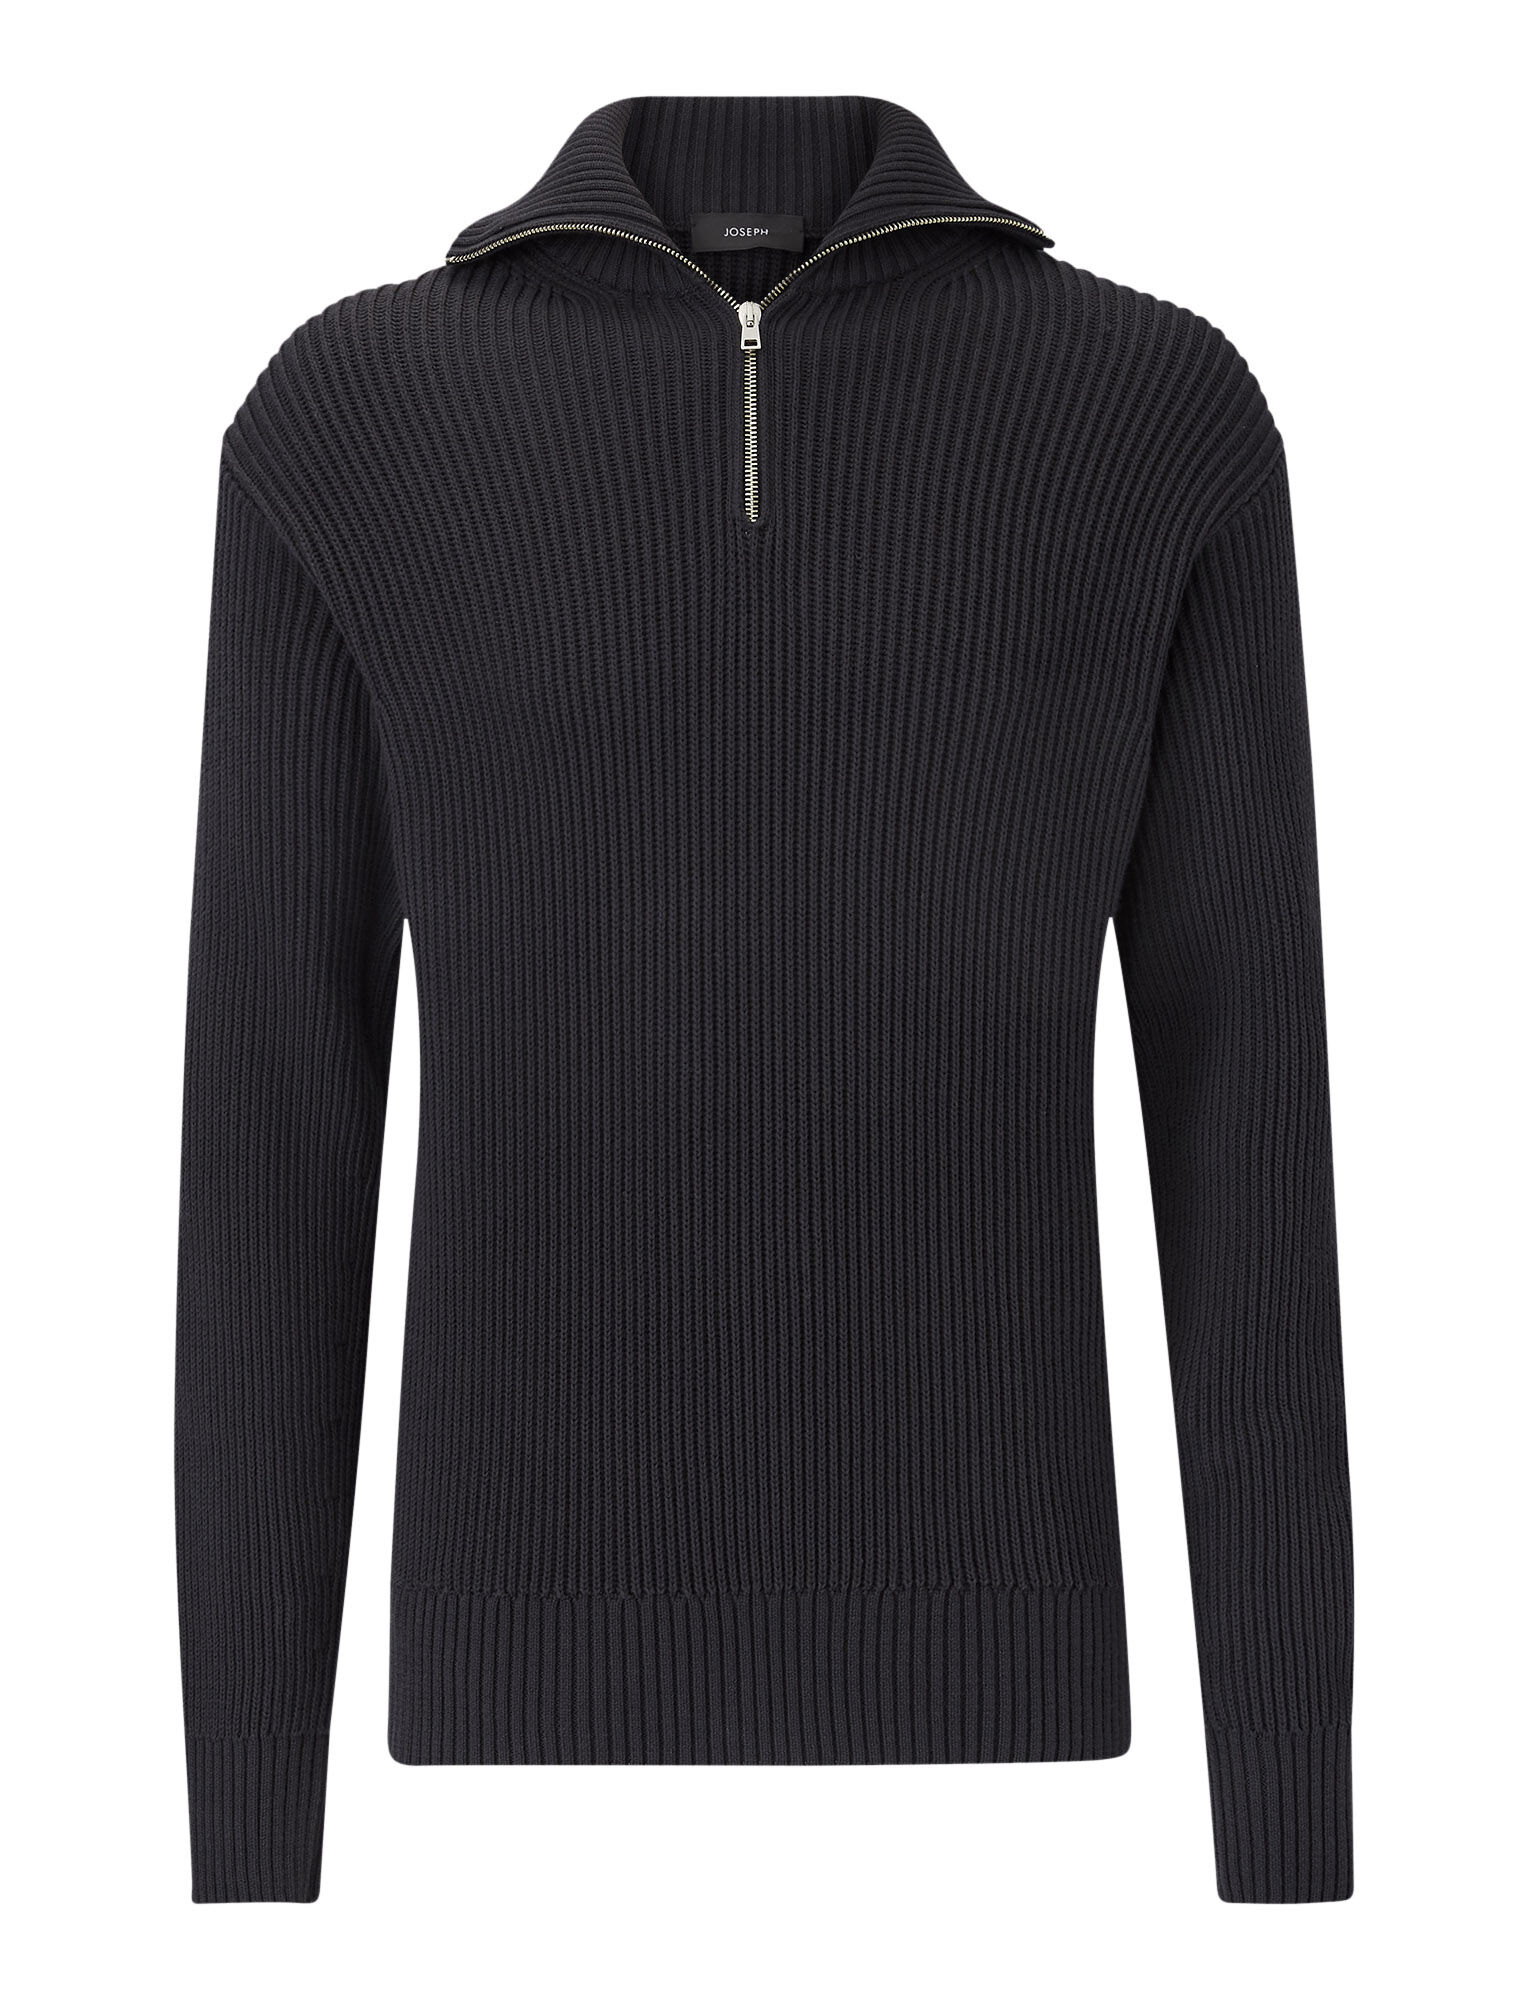 Joseph, High Neck Zip Cote Anglaise Knit, in CHARCOAL